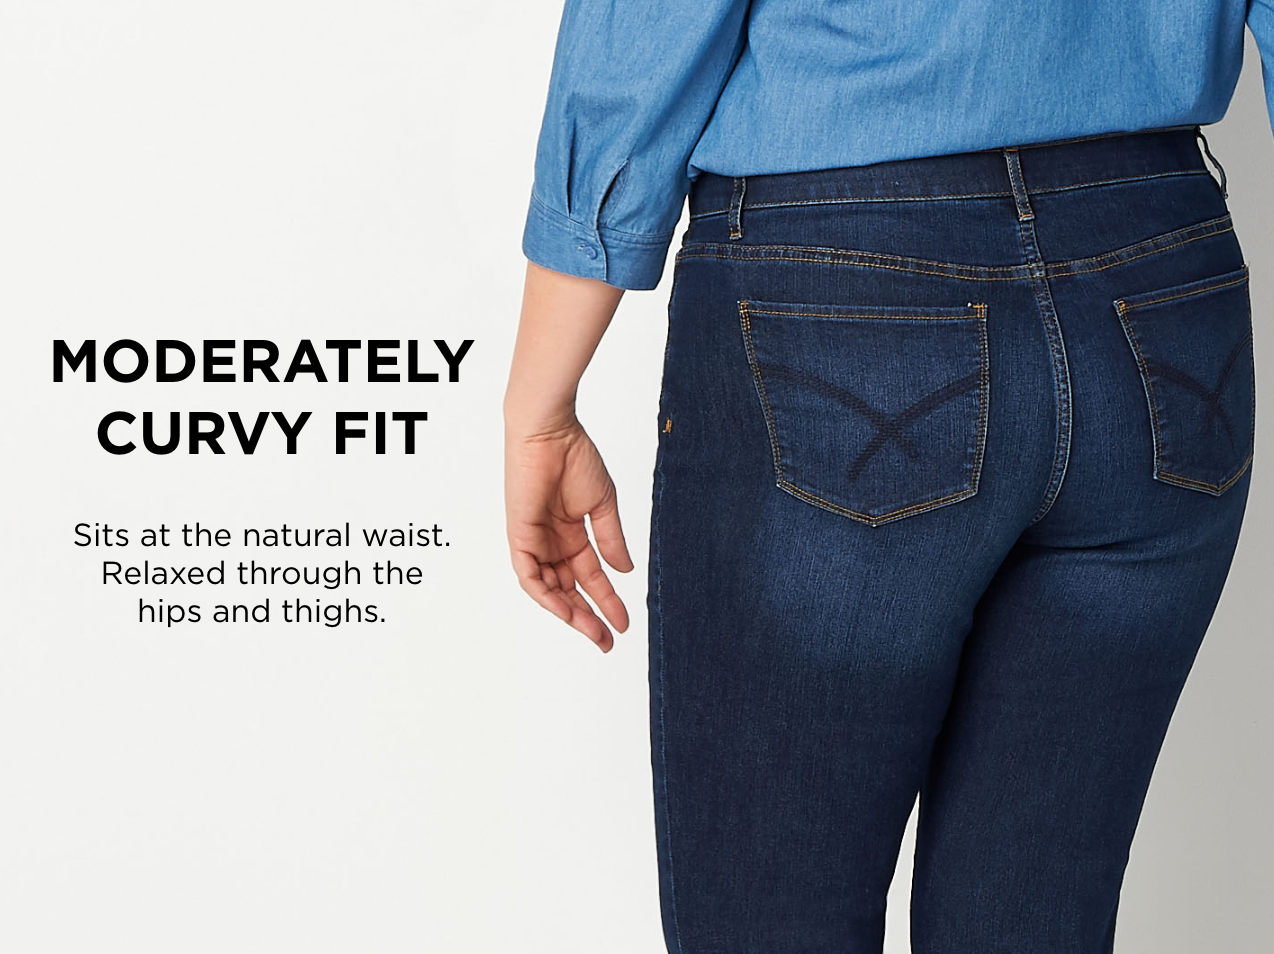 Moderately Curvy Fit. Sits at the natural waist. Relaxed through the hips and thighs.